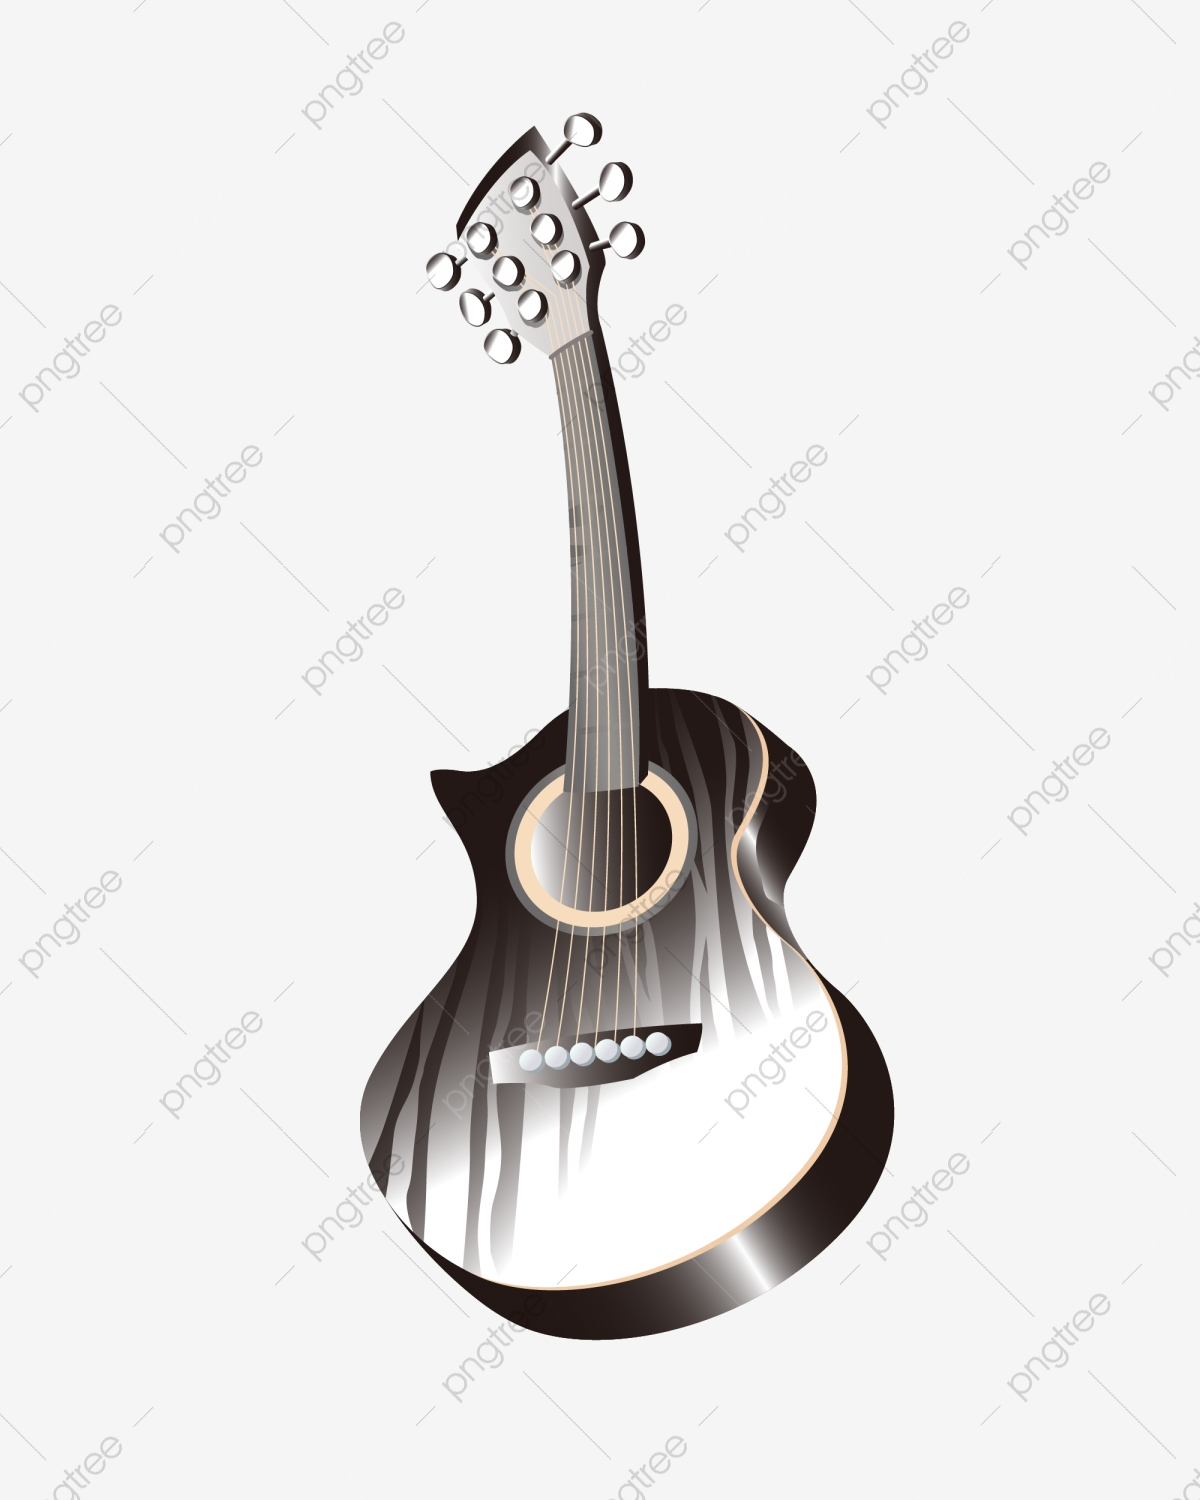 Guitar Electric Clipart Black And White Free Transparent - Guitar Clipart  Black And White, HD Png Download - kindpng